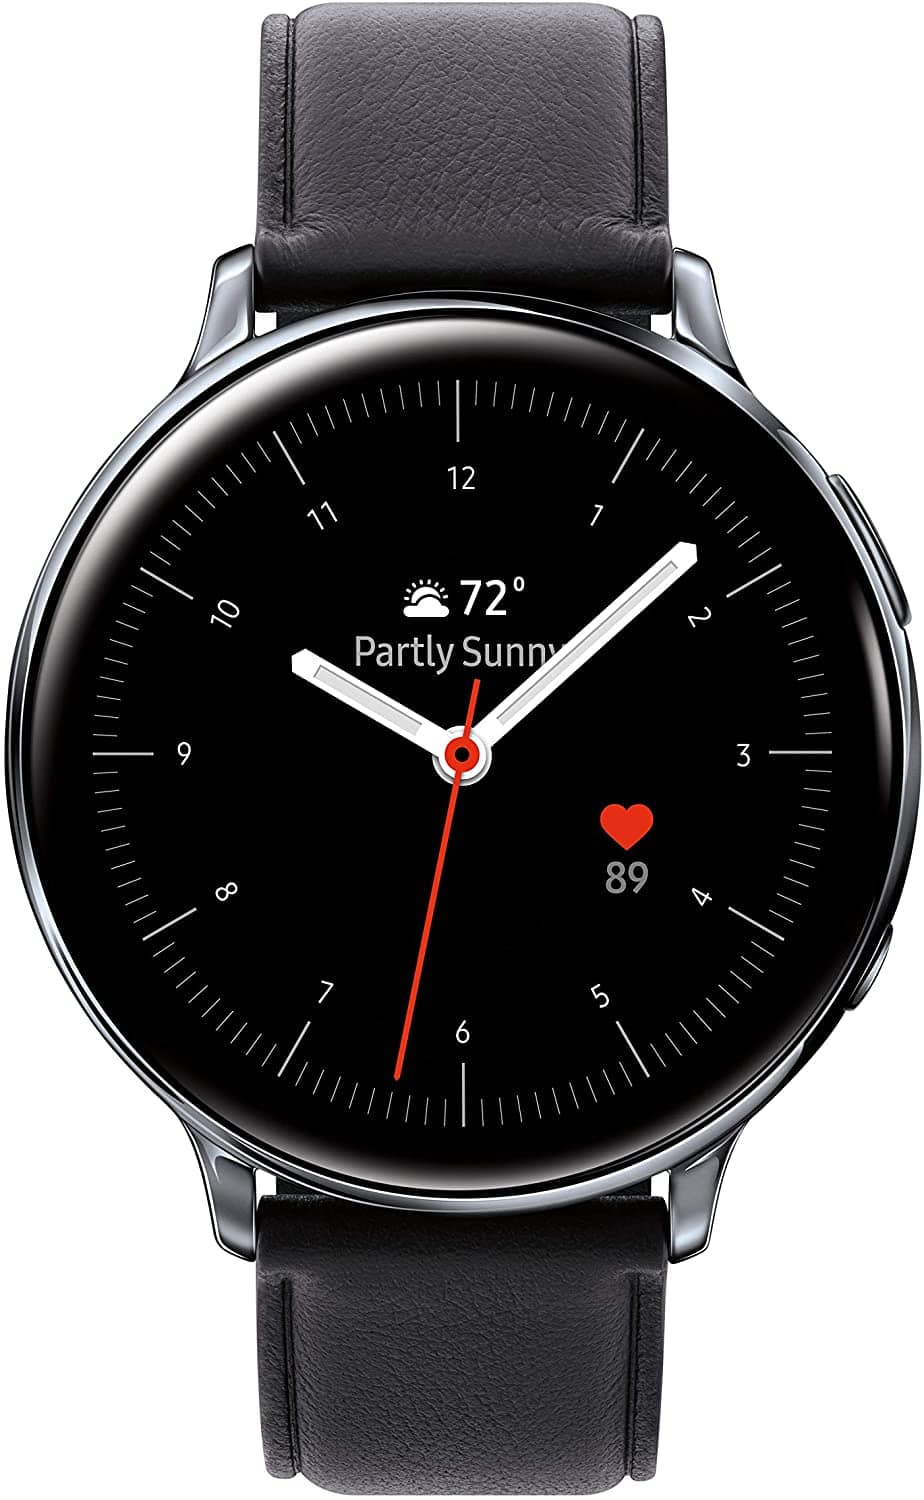 Samsung Galaxy Active Watch 2 44mm -- $50 off from Samsung $249